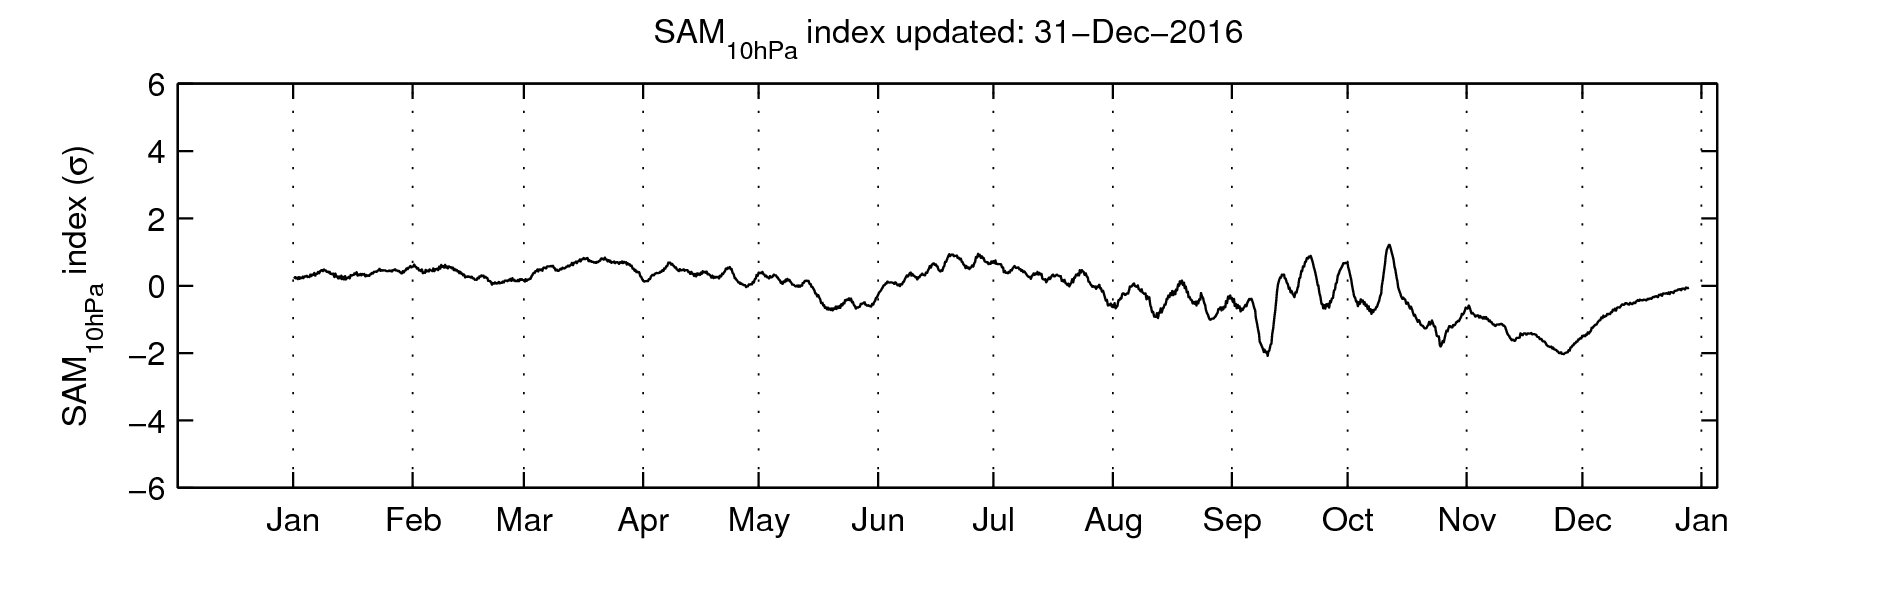 10 hPa Southern Annular Mode (SAM) index